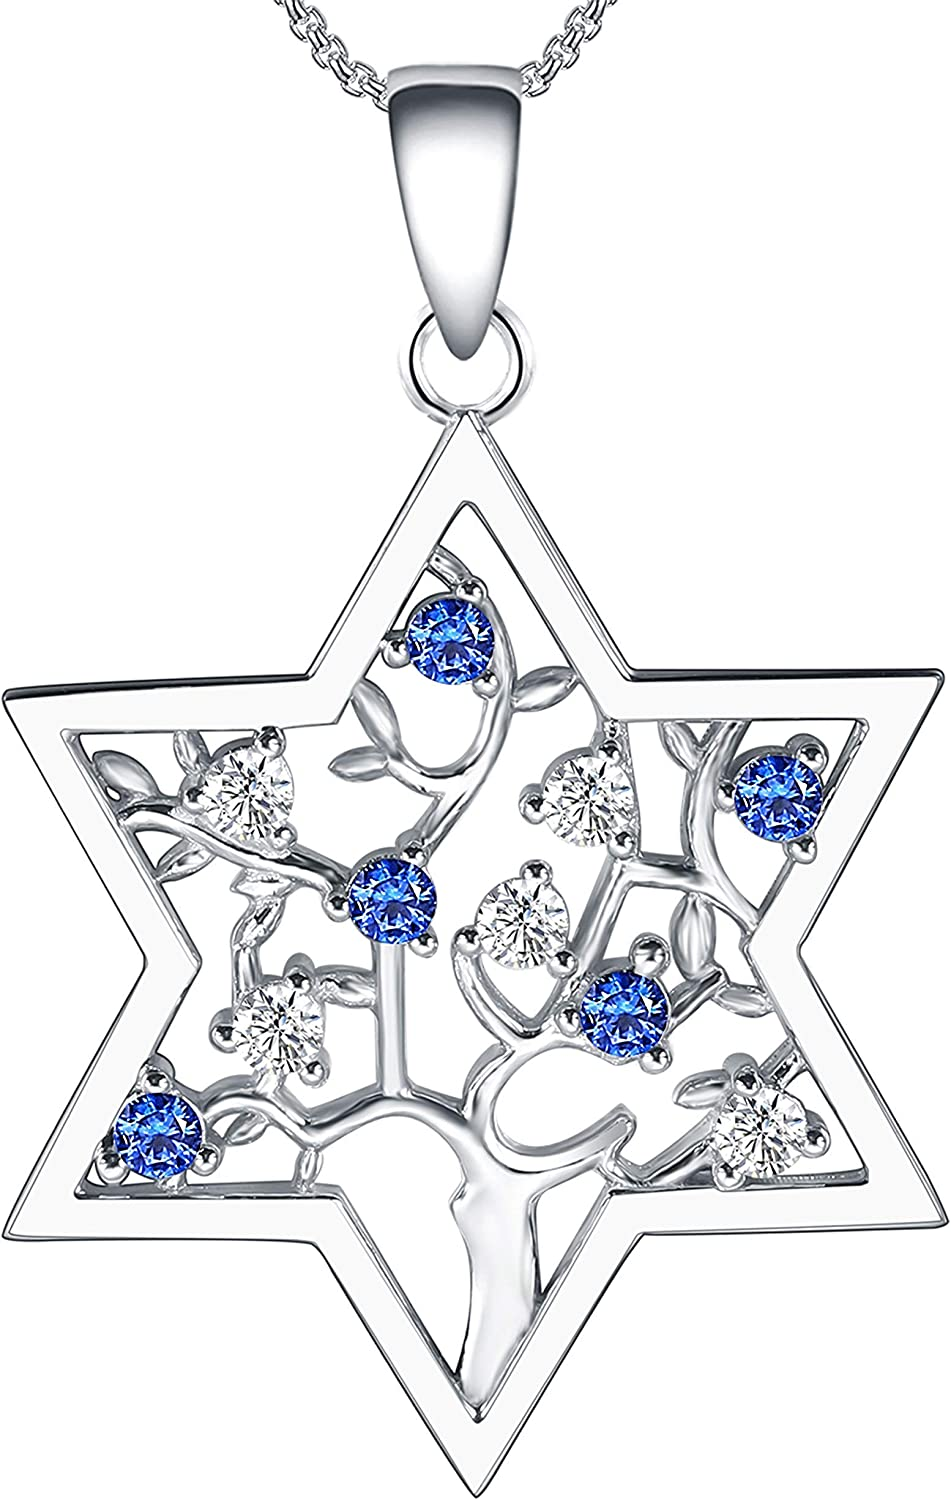 925 Sterling Silver Jewelry, Jewish Star Of David Jewelry, Tree Of Life Jewelry, Necklace, Earrings, Birthday Gifts, Hanukkah Gifts, Christmas Gifts, Thanksgiving Gifts, Jewish Gifts